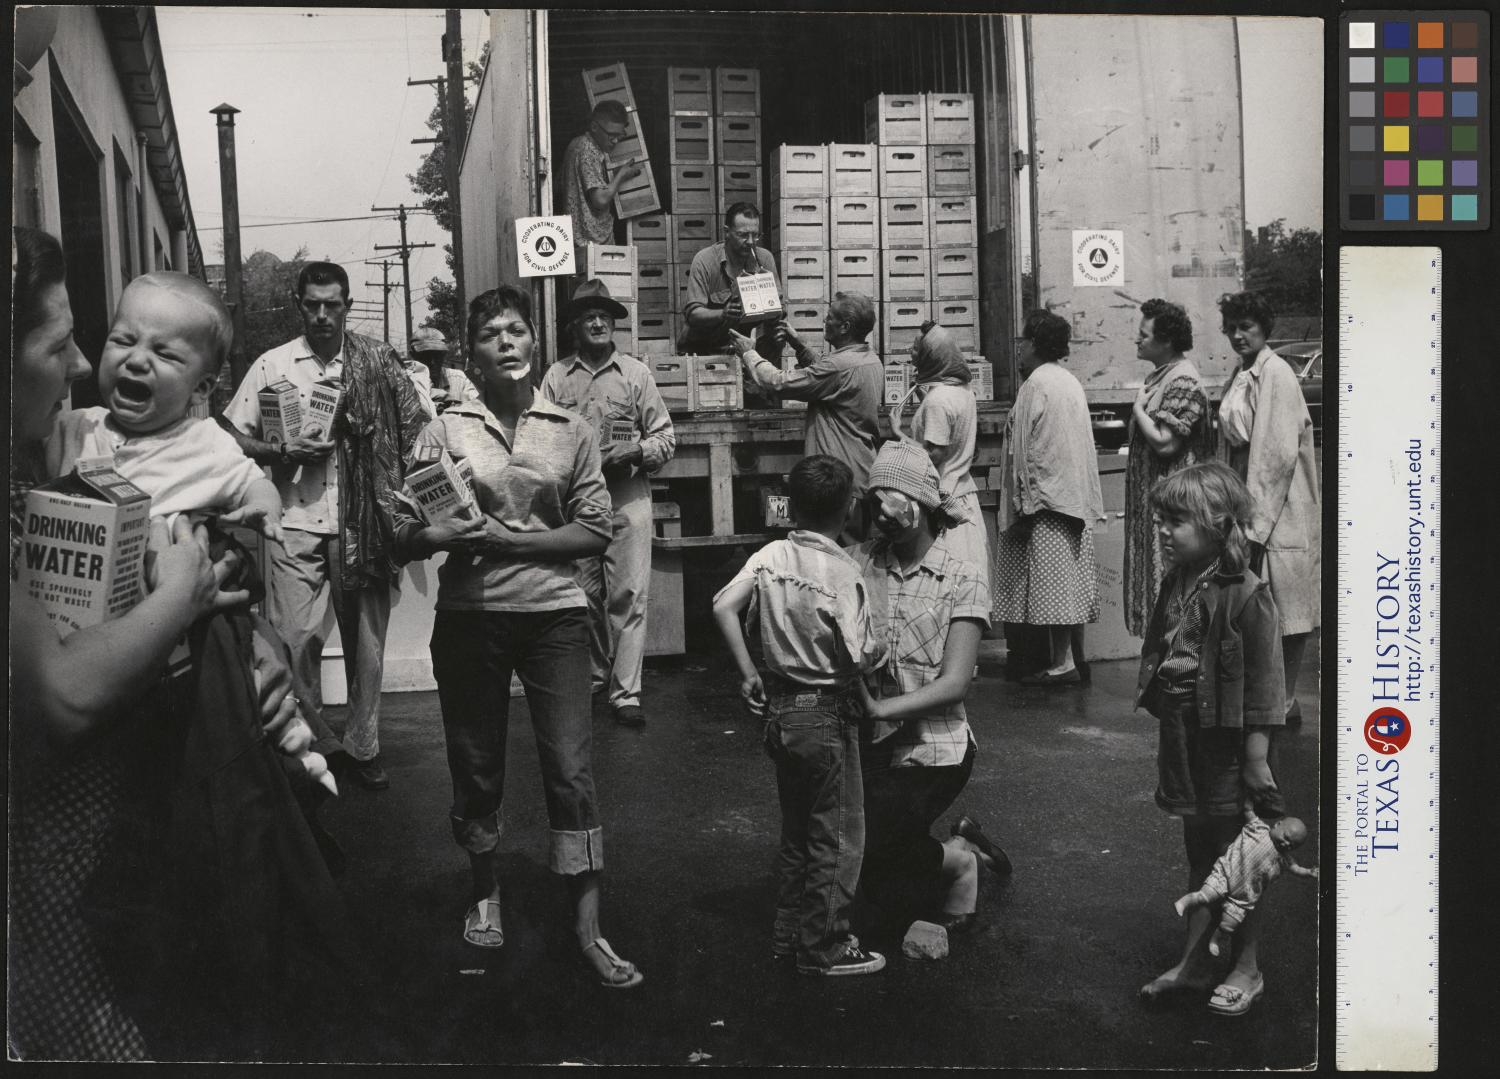 "[Receiving Water Rations], Photograph of men, woman, and children receiving two cartons of Drinking Water from the back of a truck. In the image, a line has formed for the cartons where two men inside the truck are handling the crates, a mother is consoling a crying baby in her arms, another mother, wearing bandages on her face, is fixing her sons pants. Two men and an injured woman are walking with their rations towards the camera. Narrative by Junebug Clark: Water Delivery to Florida Hurricane Disaster Victims (Re-creation) Highland Park, Michigan Photo: Joe Clark HBSS 1955 This photo is significant because in the early 50s milk was only being distributed in glass bottles. Pure-Pak was manufacturing ""New"" paper carton containers, but people were reluctant to buy milk in anything but a glass bottle. There are a series of photos in the Clark Family Photography Collection used in ads to promote the benefits of the paper carton over the glass bottle, but nothing really changed the peoples opinion until… …a hurricane hit Florida and Excello, the parent company of Pure-Pak, sent truck loads of emergency drinking water in Pure-Pak paper cartons and people finally got it. Why send glass bottles to an area already covered in broken glass? These darn things work. Since there were no photos of the unanticipated and successful distribution of paper cartons of Drinking Water, this photo is a recreation of the event. My mother, Bernice (back row second from right) was tasked early one morning, to call neighbors and friends to come to the parking of our studio, ""Immediately, dressed just as you are to our studio parking lot) Soon afterwards, the cardboard ""Milk Carton"" as opposed to the glass ""Milk Bottle"", made it into everyday life and into your refrigerator today. Photo by: Joe Clark, HBSS. https://digital.library.unt.edu/ar…/67531/metadc499295/…/1/… ...,"